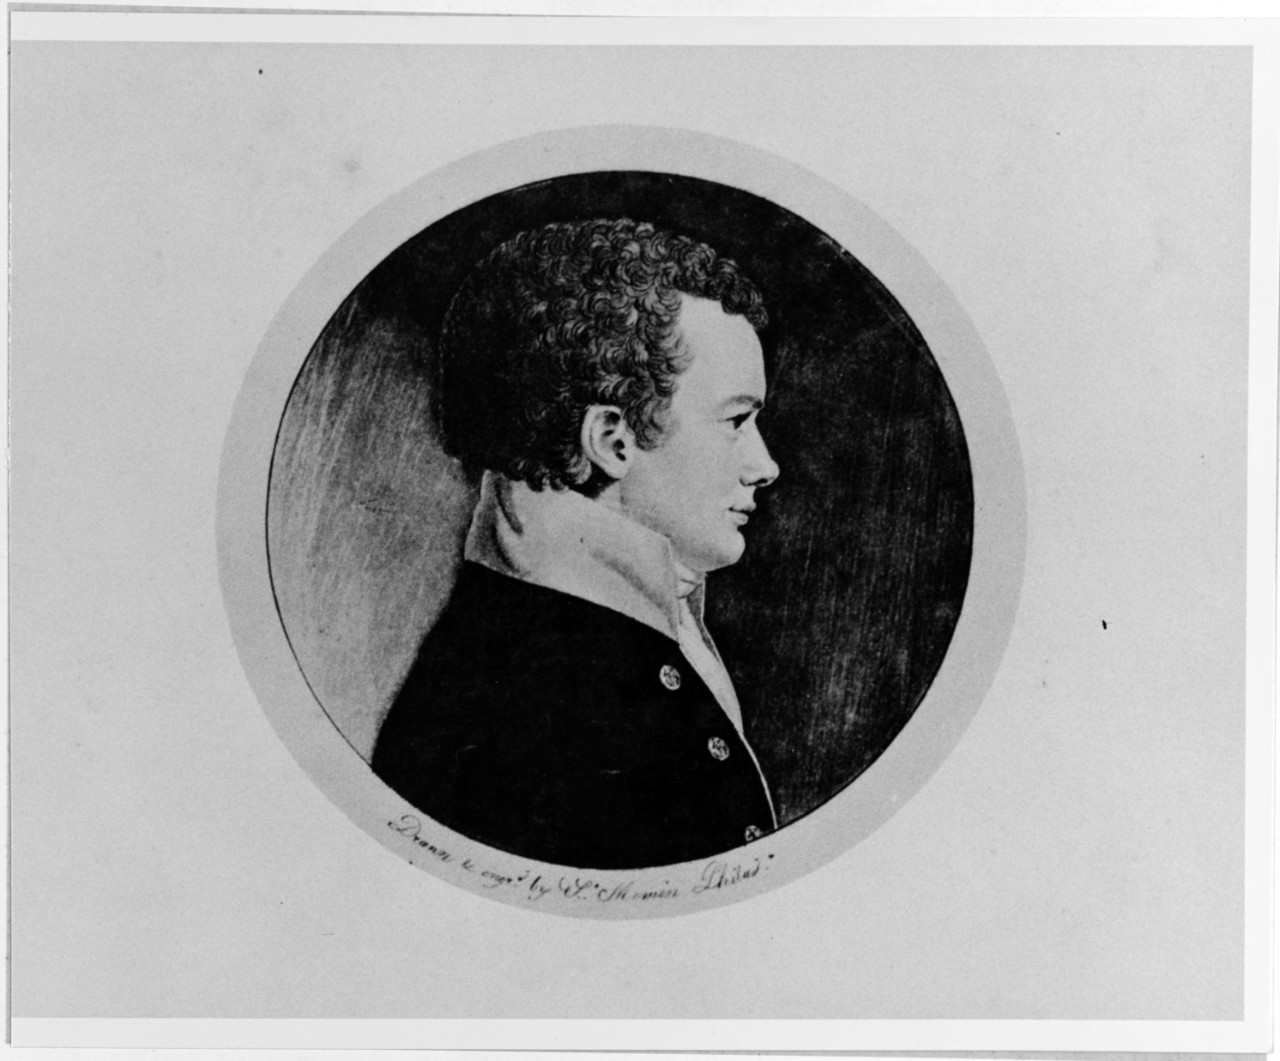 Midshipman James R. Caldwell, engraved portrait by Charles Ste. Memin of Philadelphia, 1799. (Naval History and Heritage Command Photograph NH 51575)